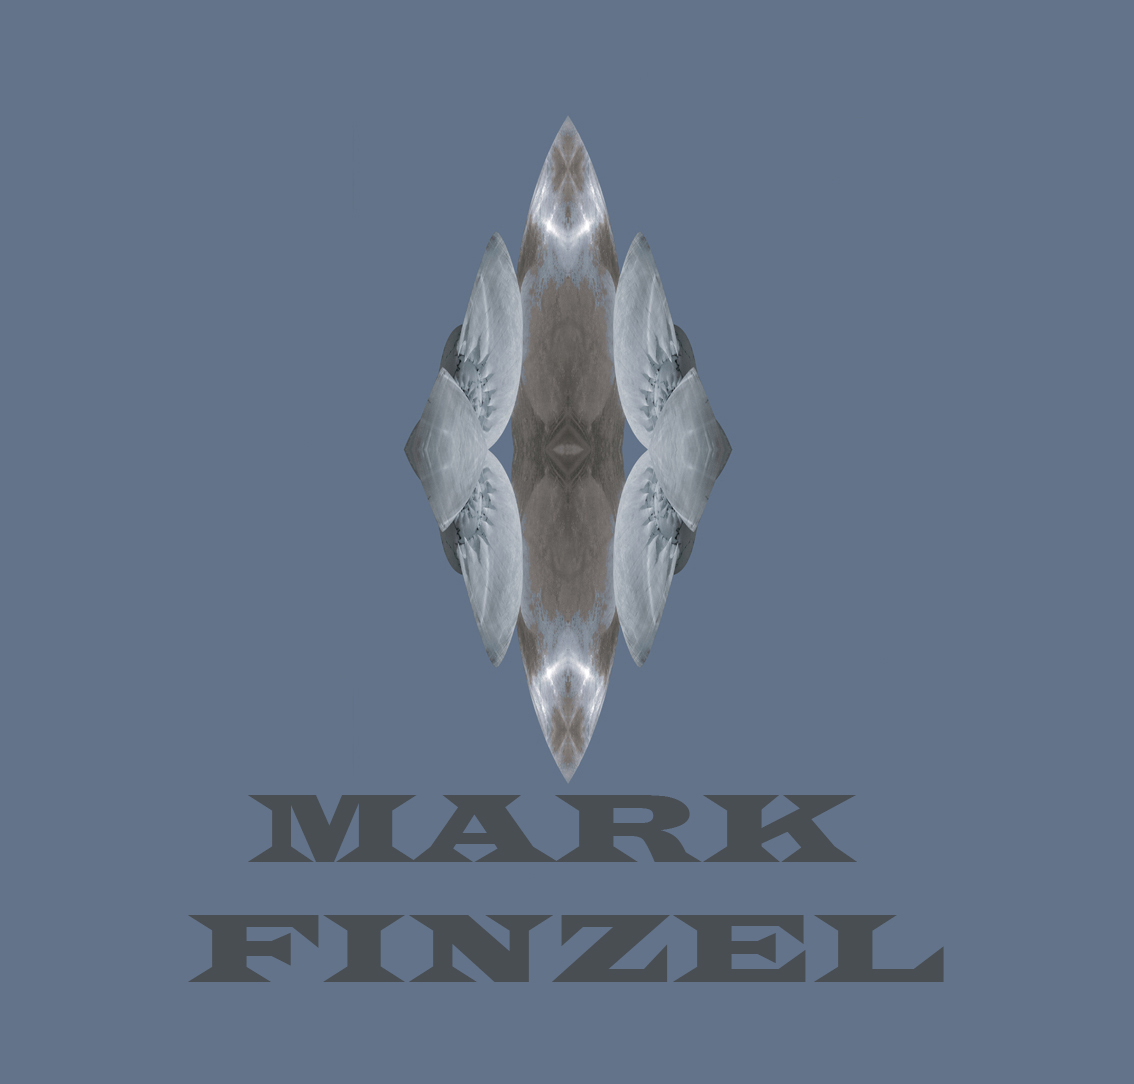 Mark Finzel Art and Design